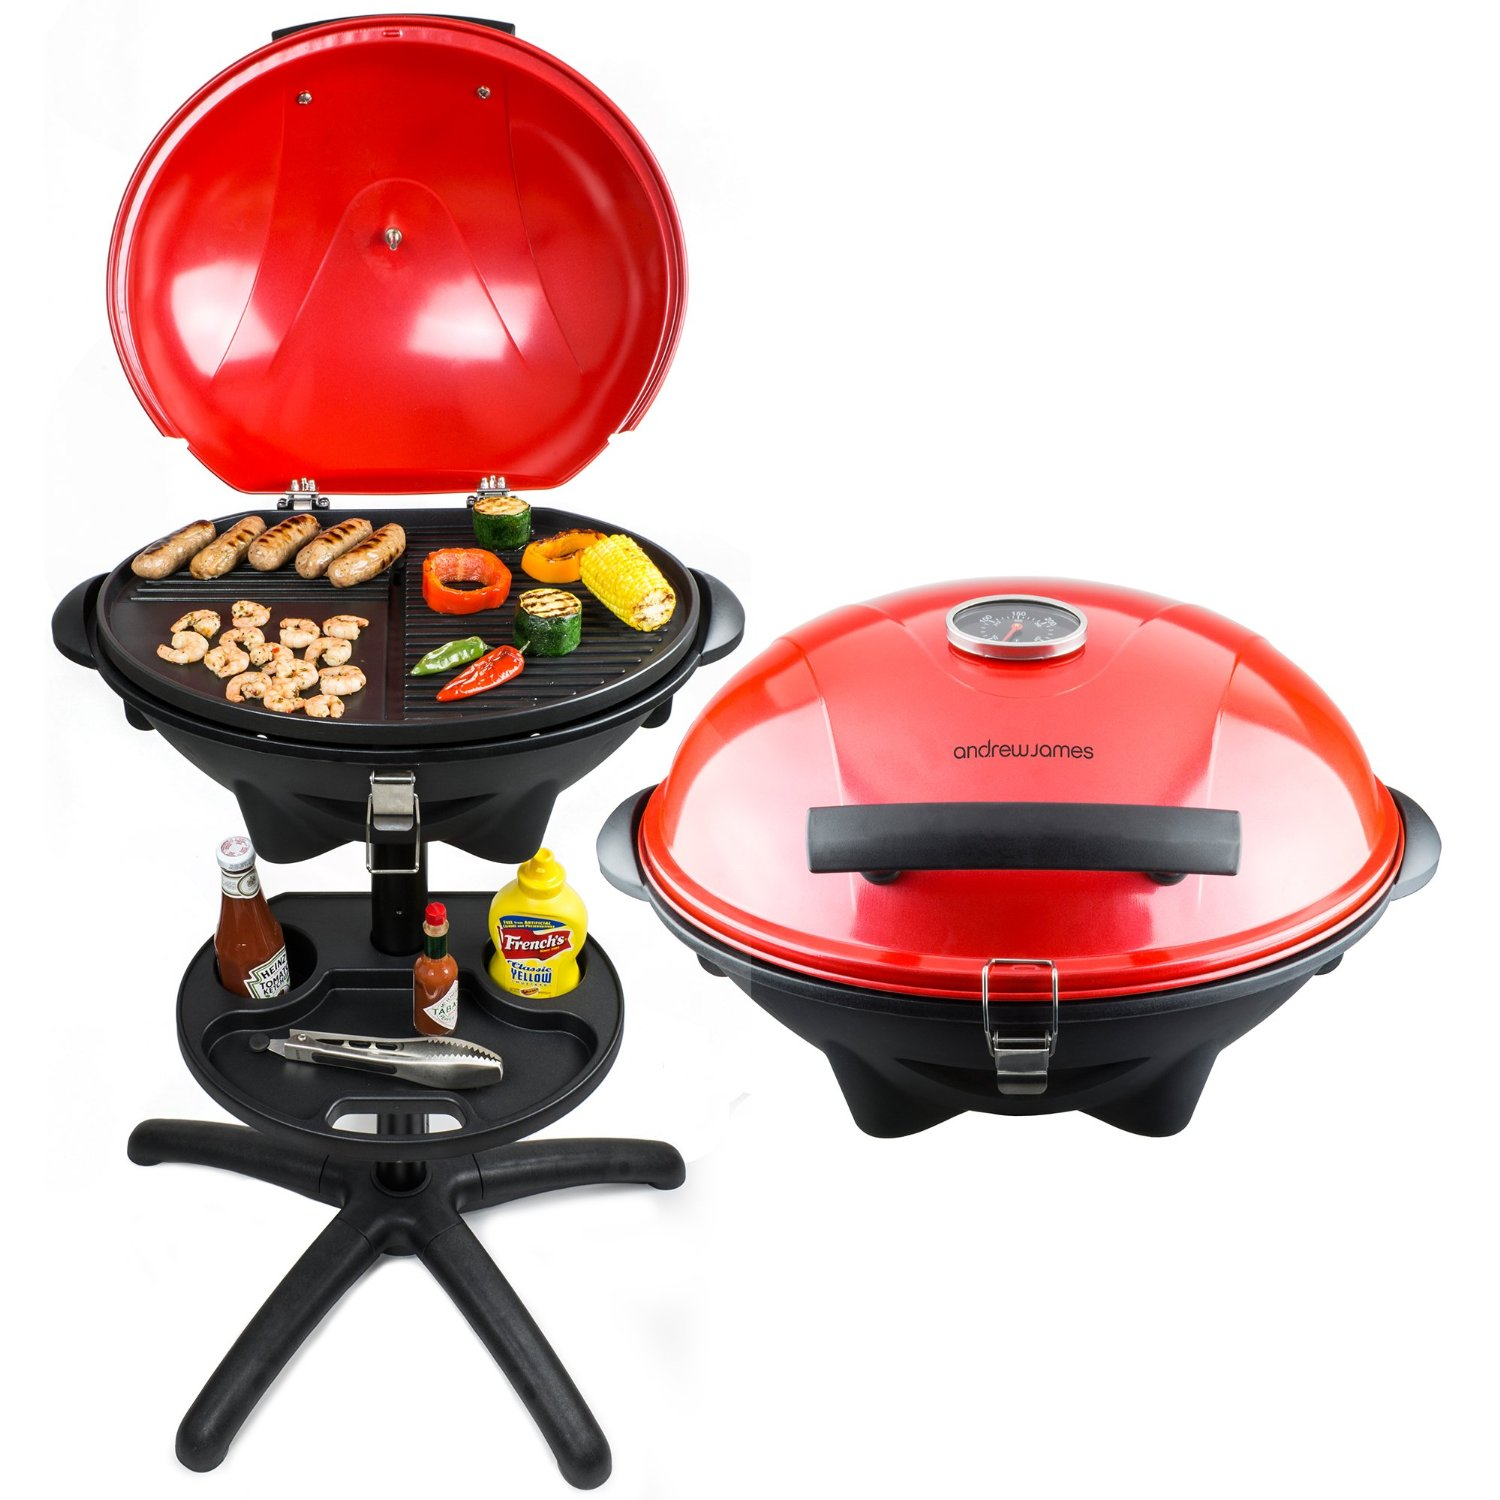 Andrew James Red Electric BBQ Grill With Built In Thermometer